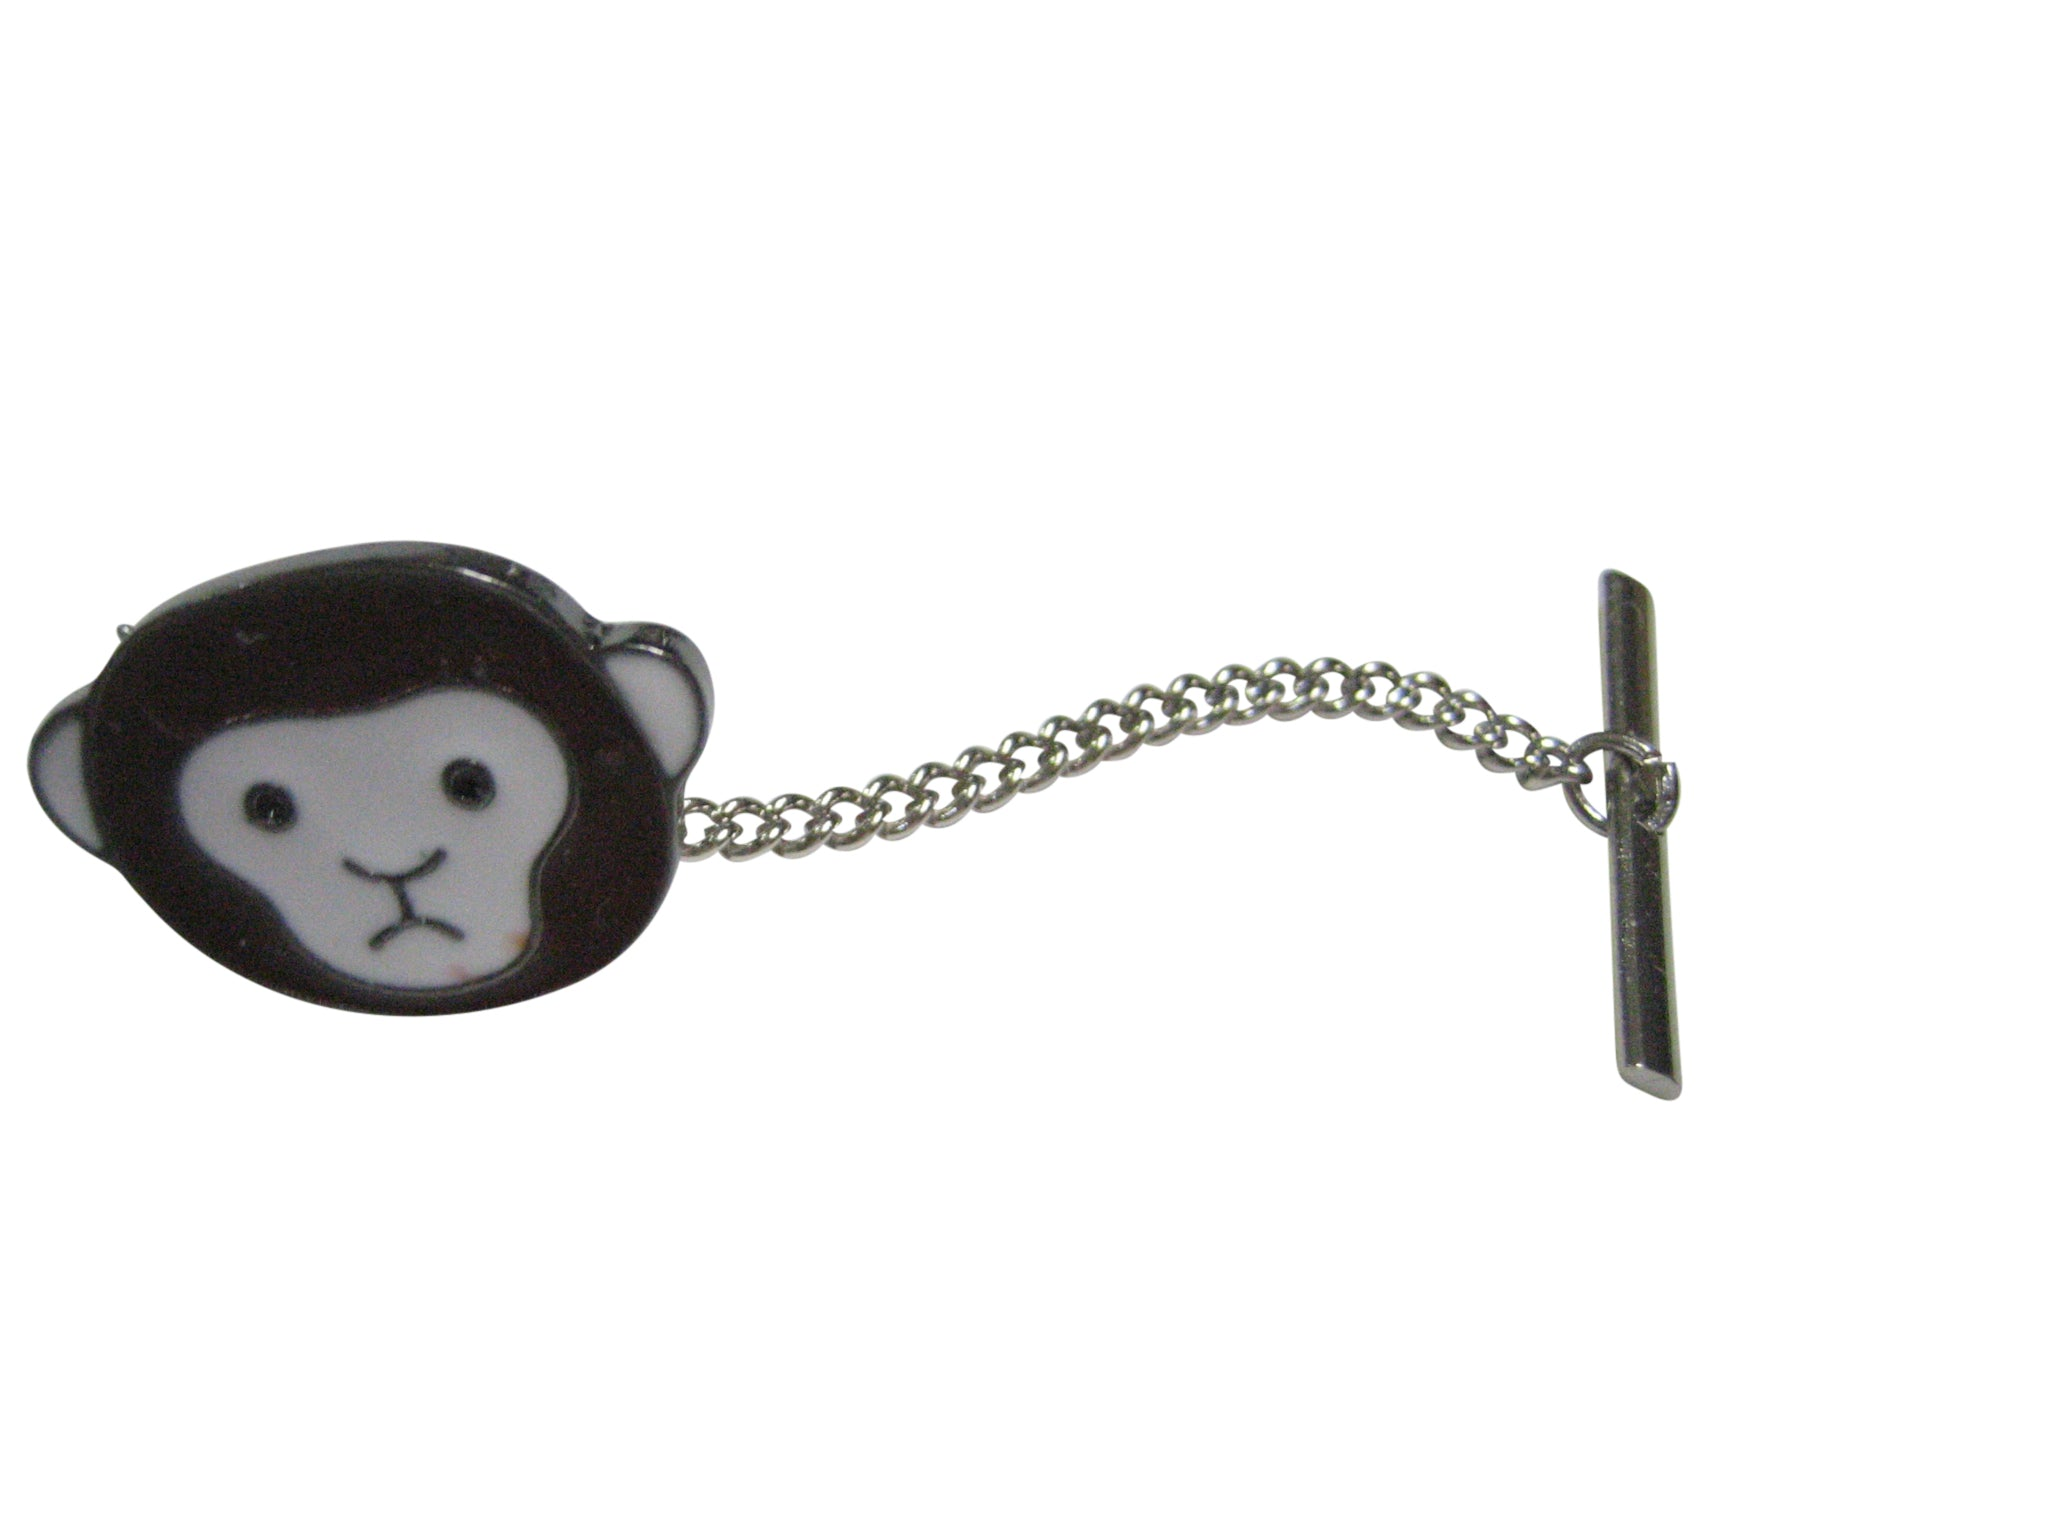 Confused Monkey Tie Tack